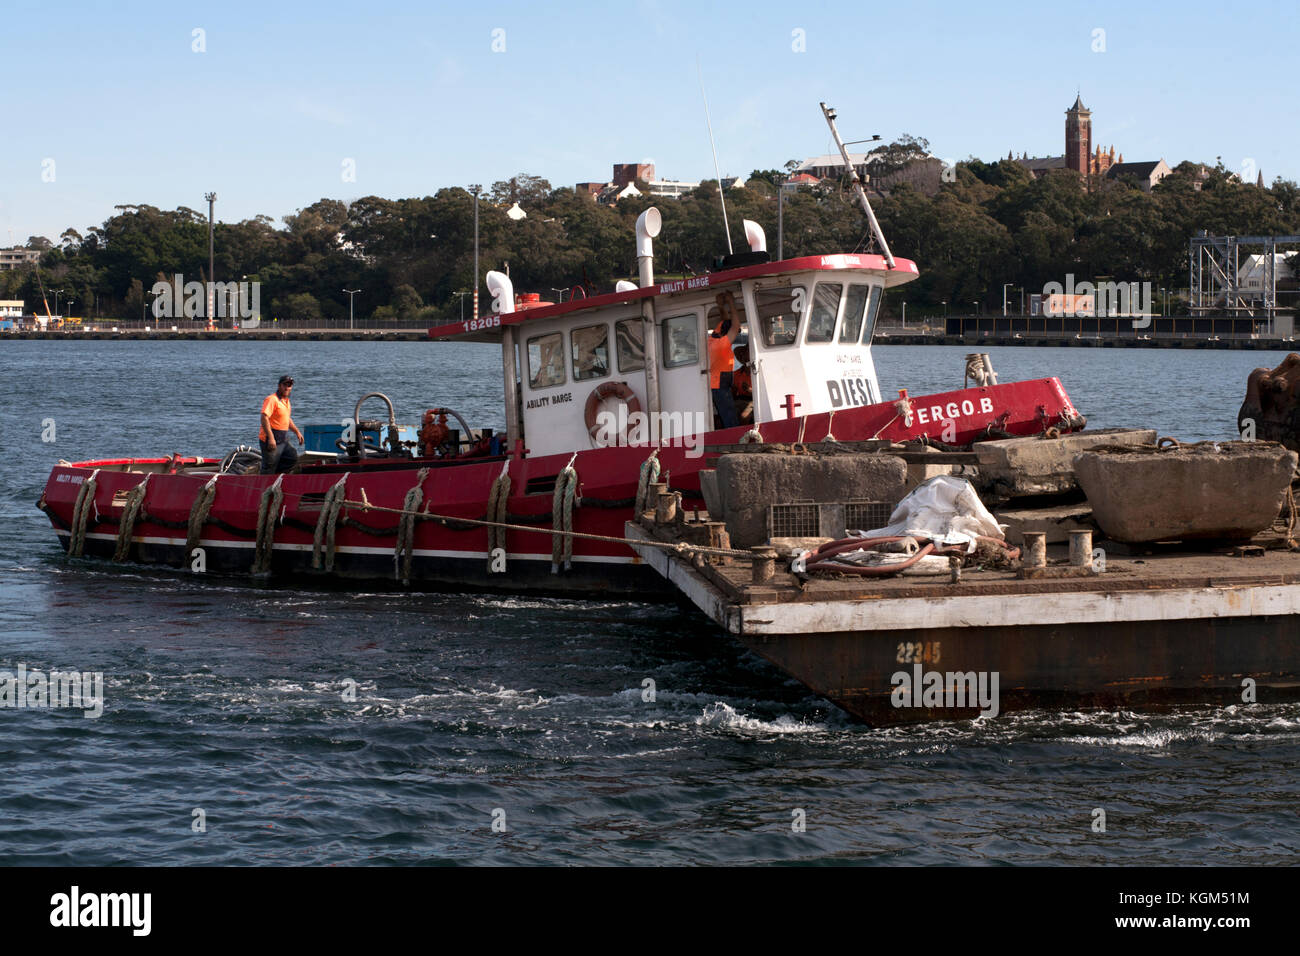 Capacidad barcaza jones bay pyrmont Sydney, New South Wales Australia Imagen De Stock